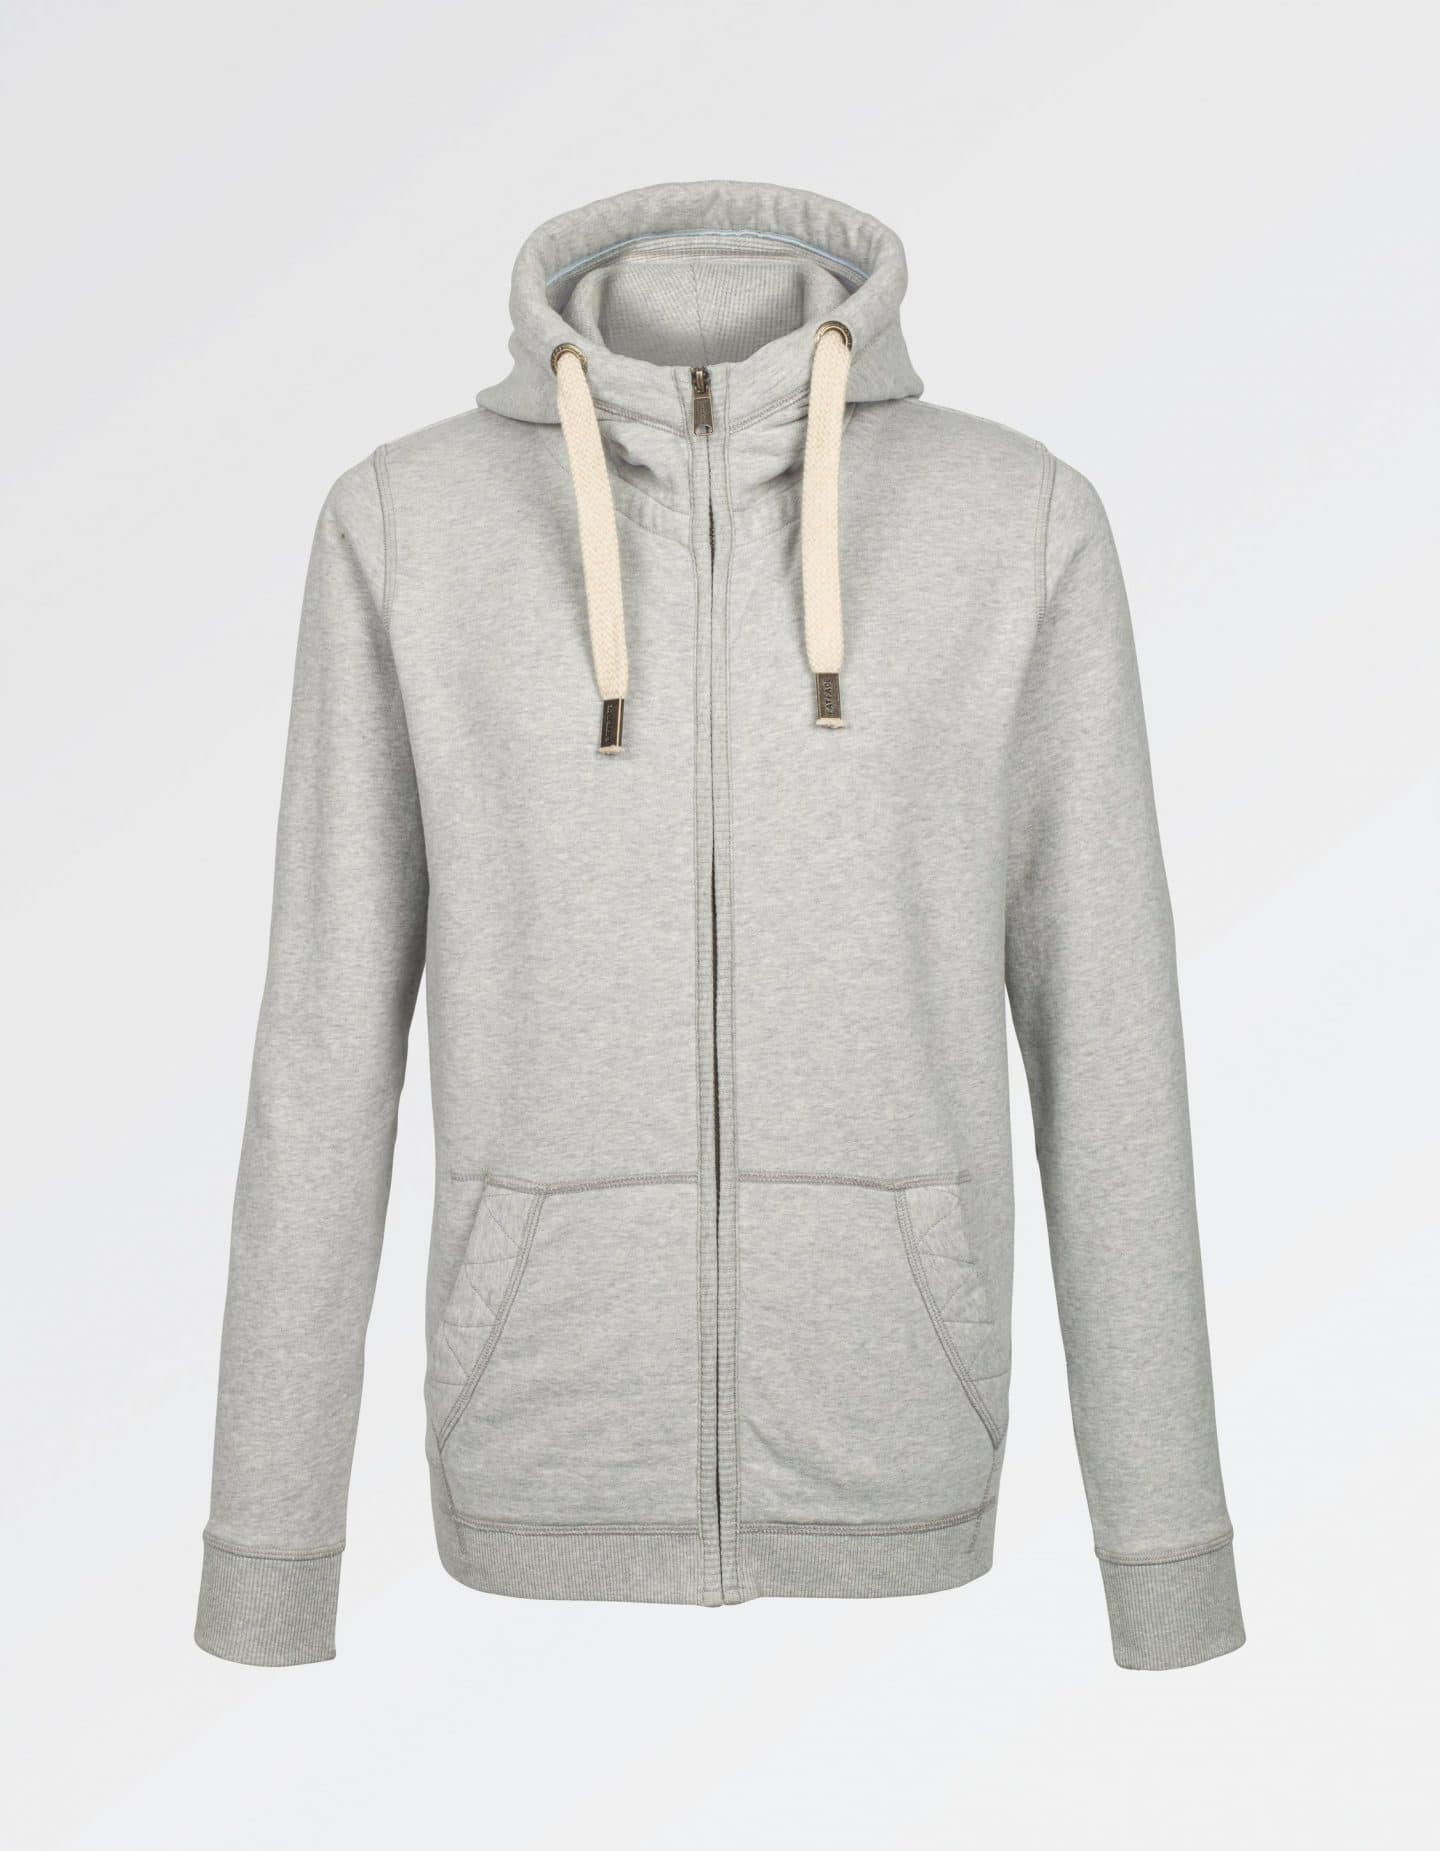 Fat Face Organic Grey Hoody